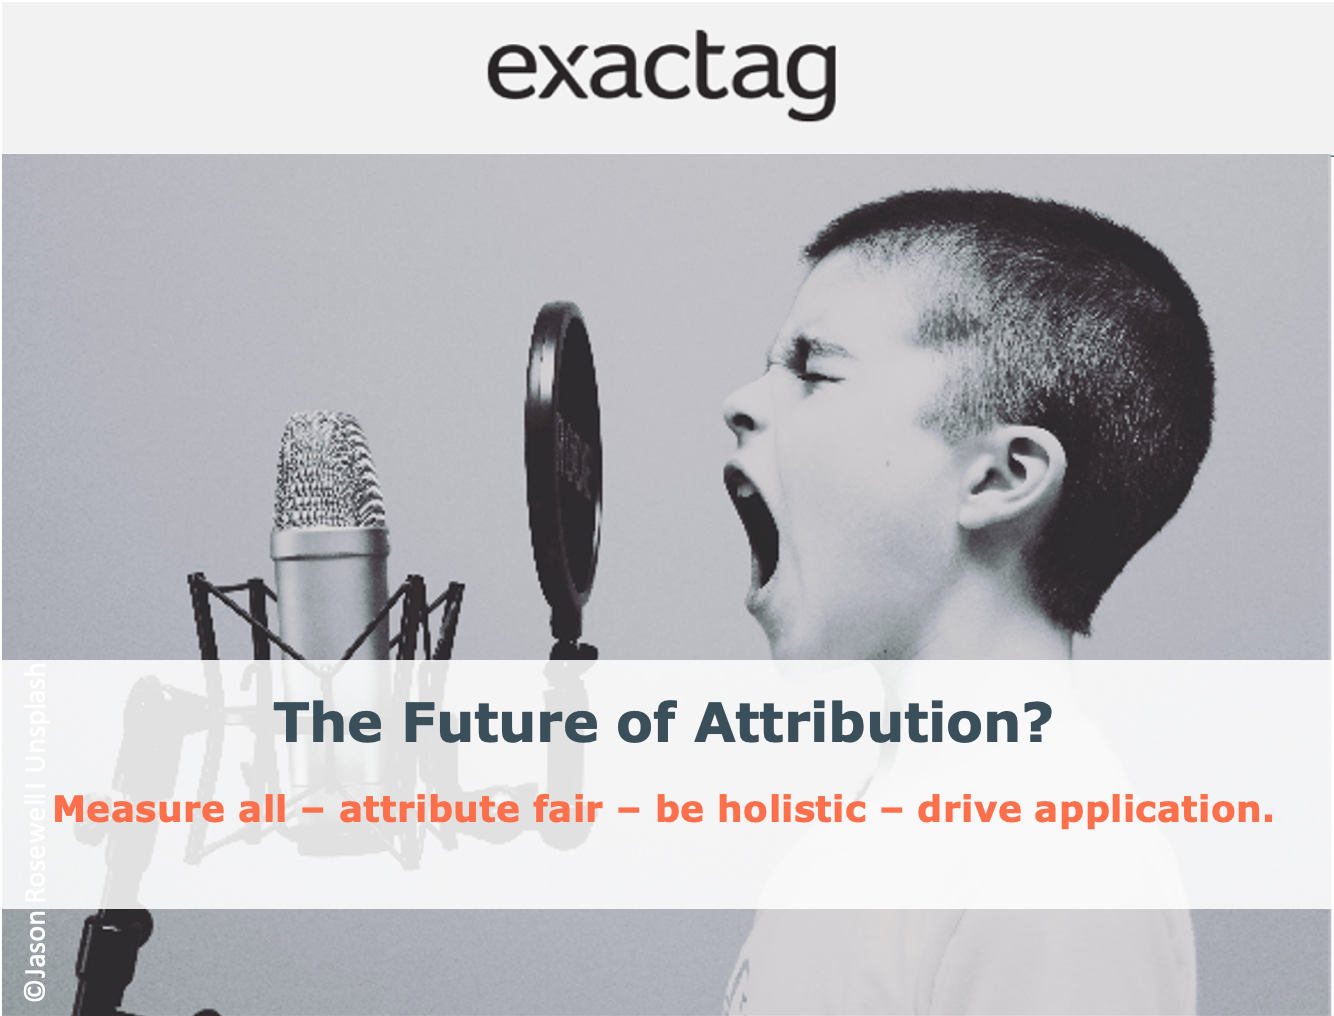 The future of marketing attribution: measure all - attribute fair - be holistic - drive application - do it now!